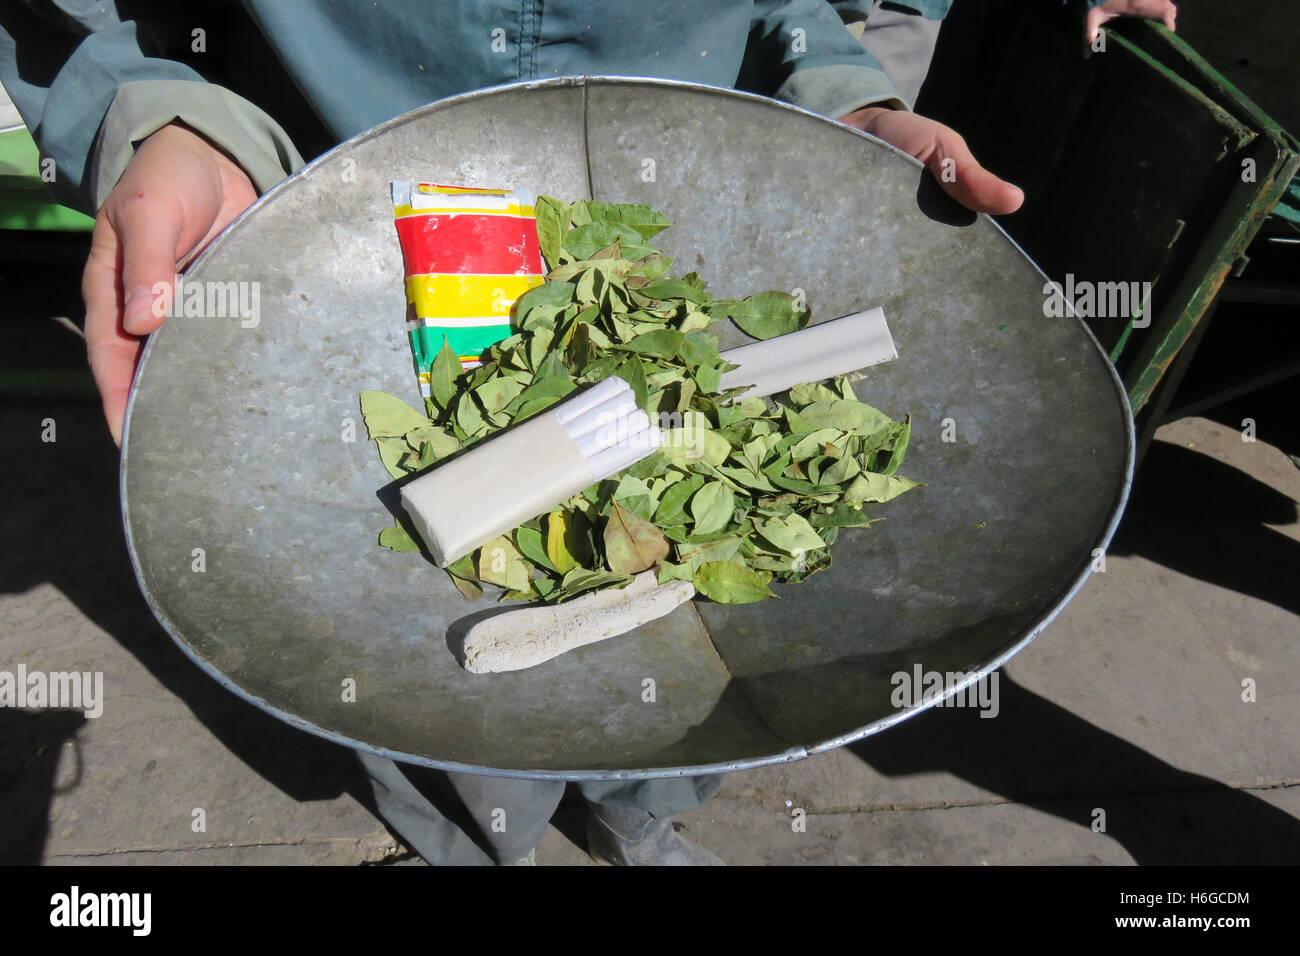 Gifts for miners, coca leaves and dynamite - Stock Image